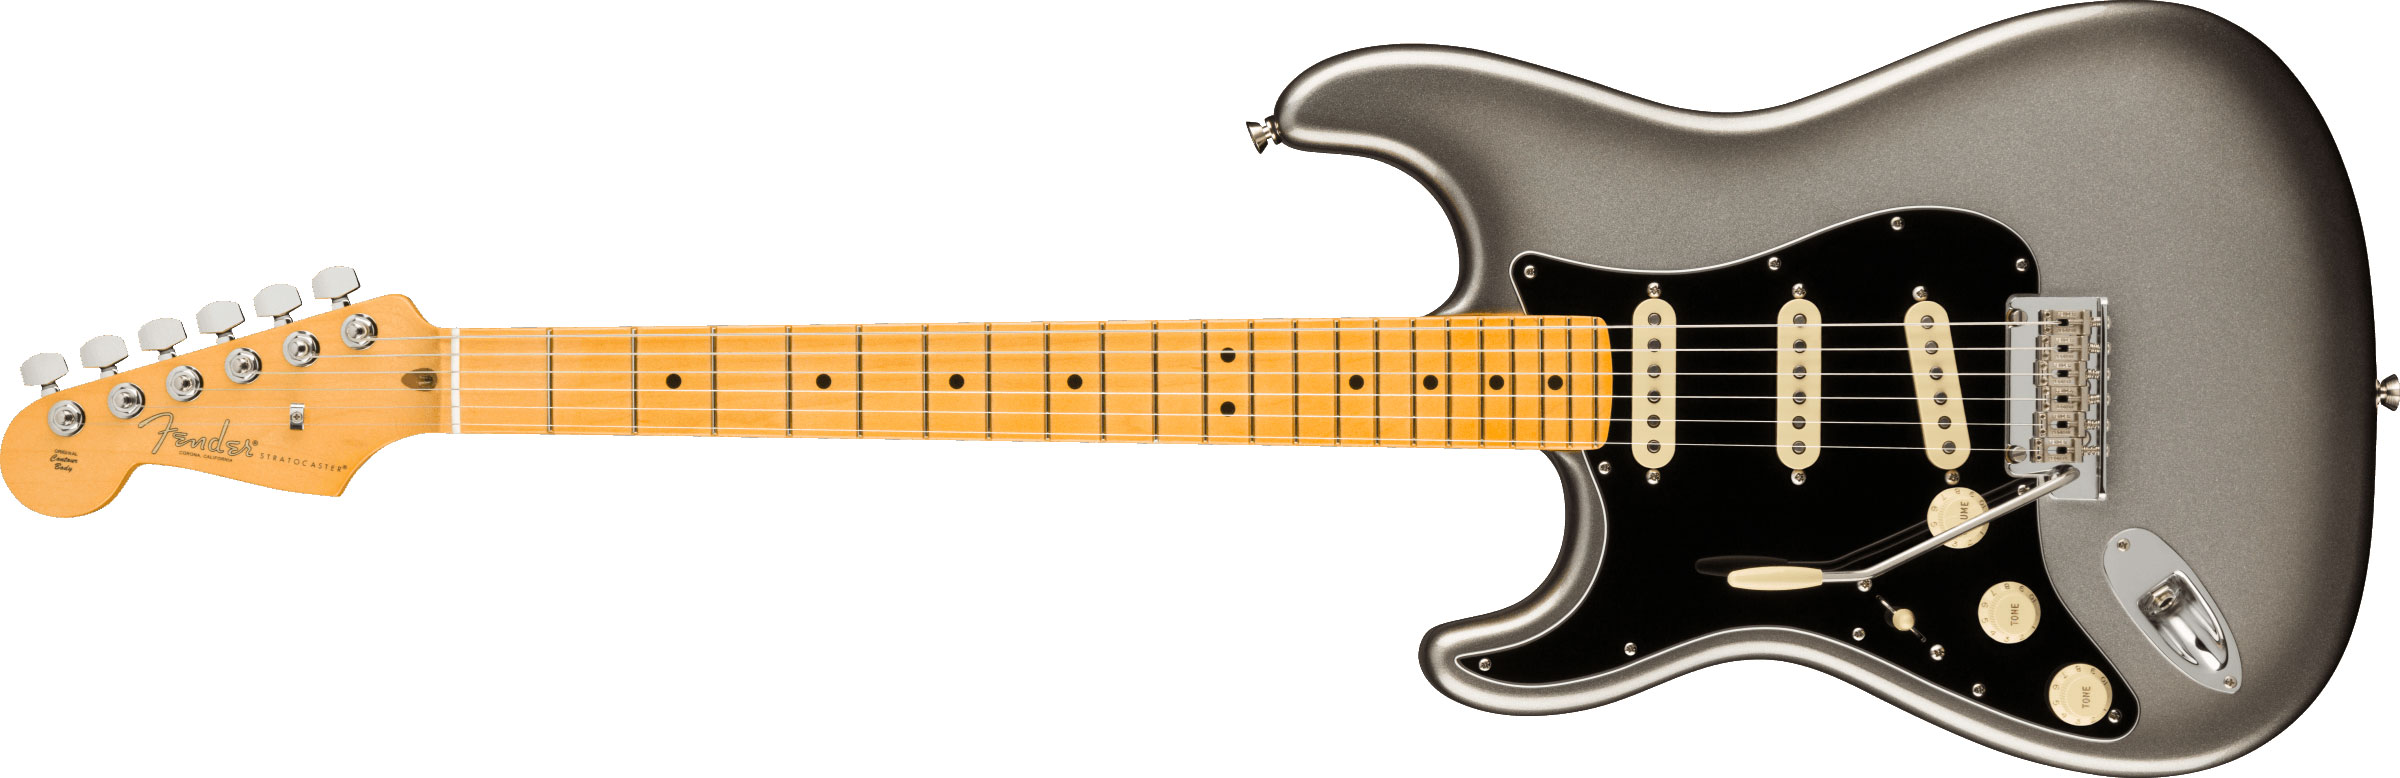 American Professional II Stratocaster Left-Handed (2020-) 画像1